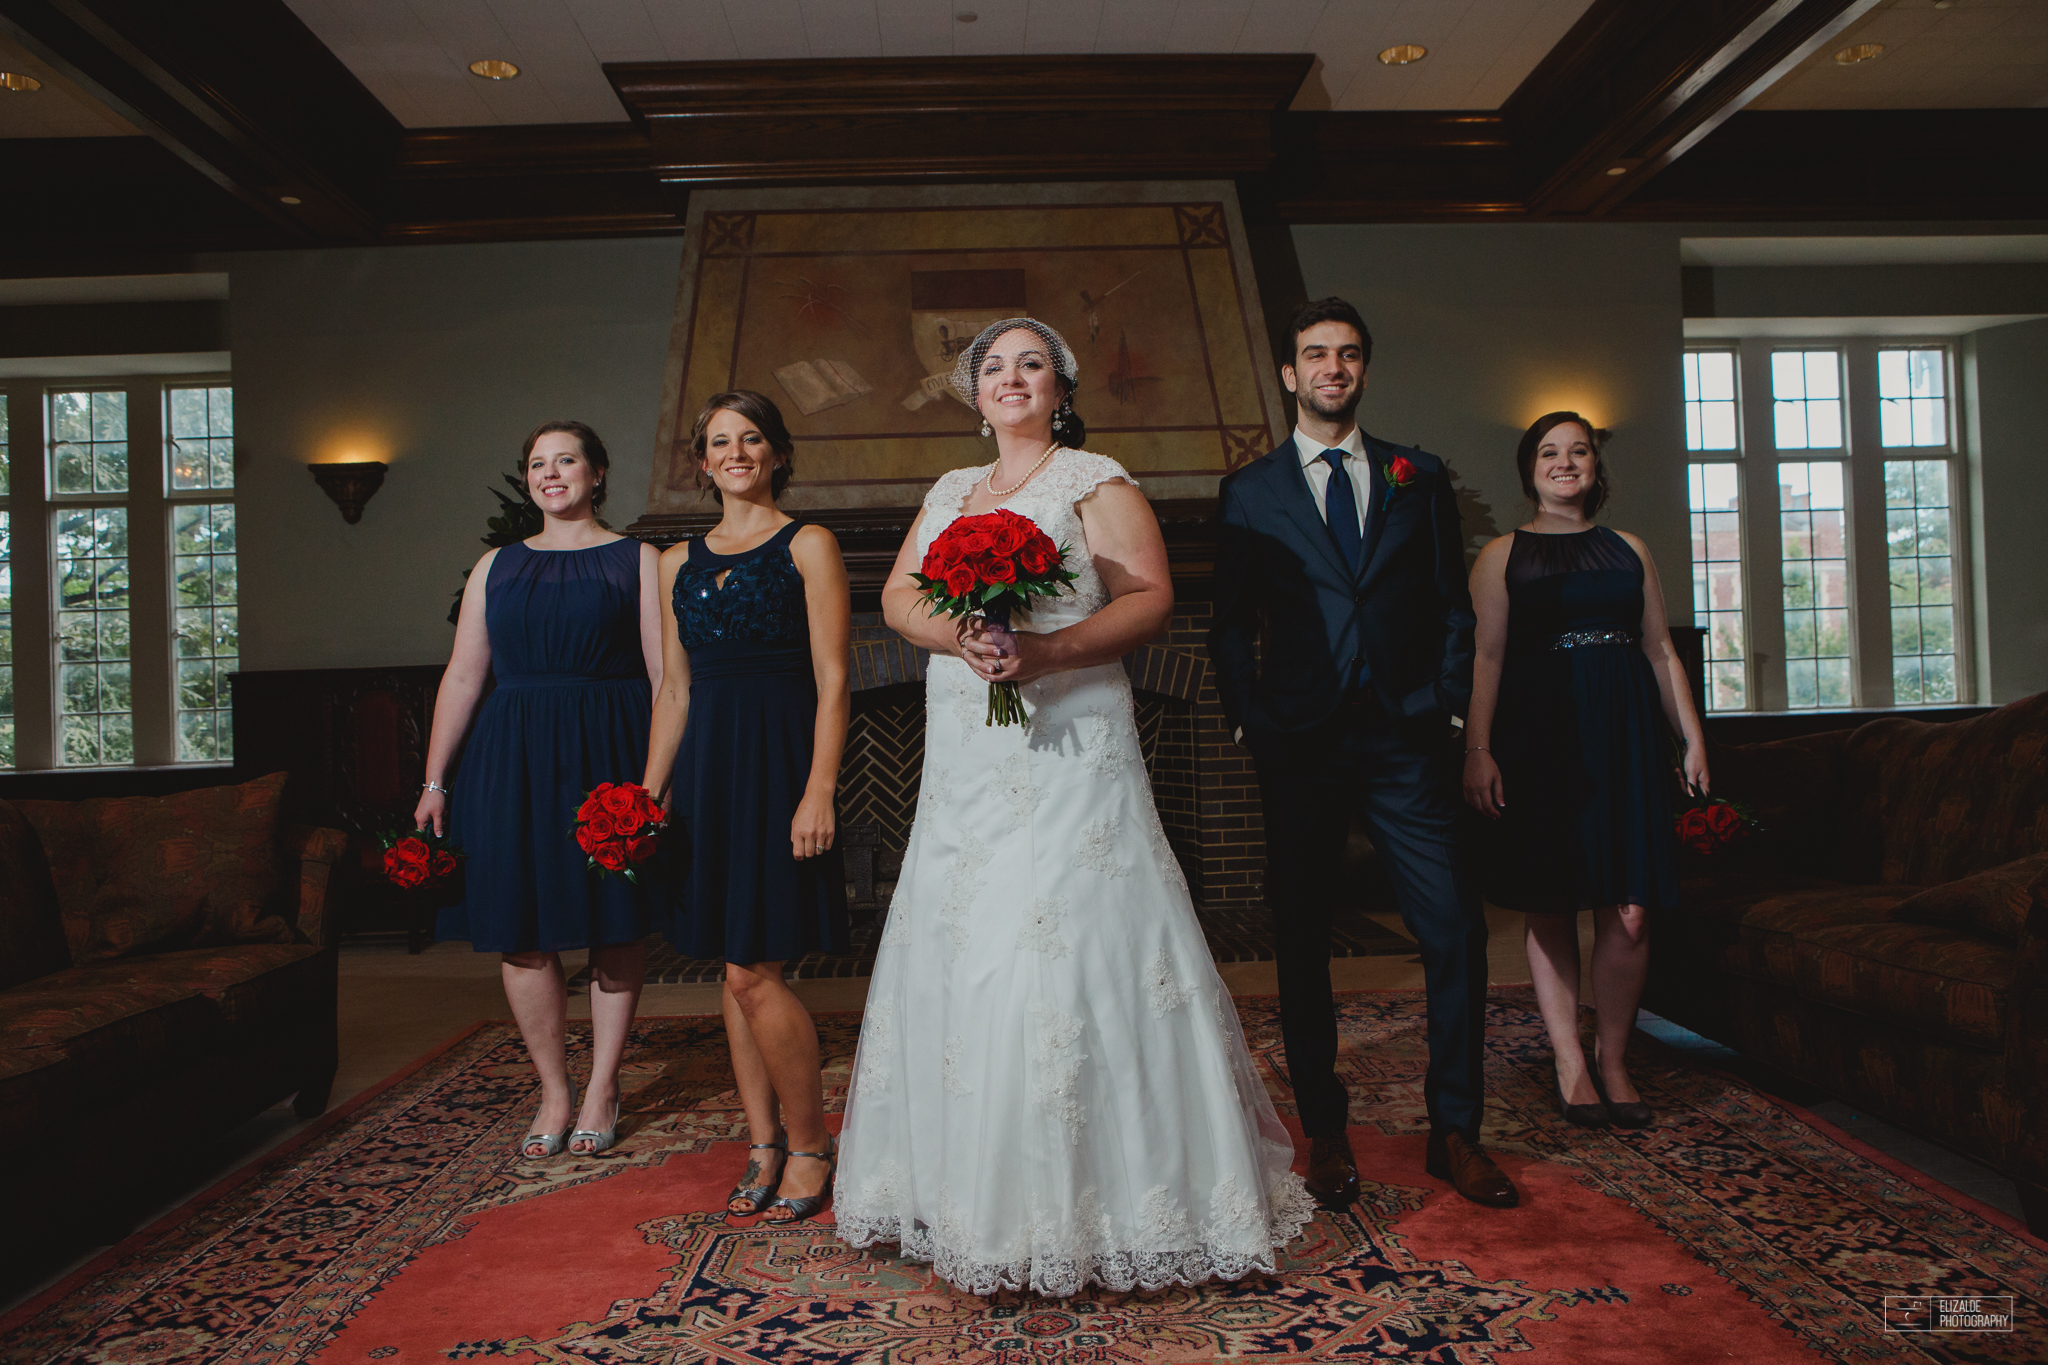 University of Oklahoma_UO_Wedding Photographer_Wedding photography_DFW Wedding Photographer_Elizalde photography_Denton Wedding Photograper  (38 of 100).jpg